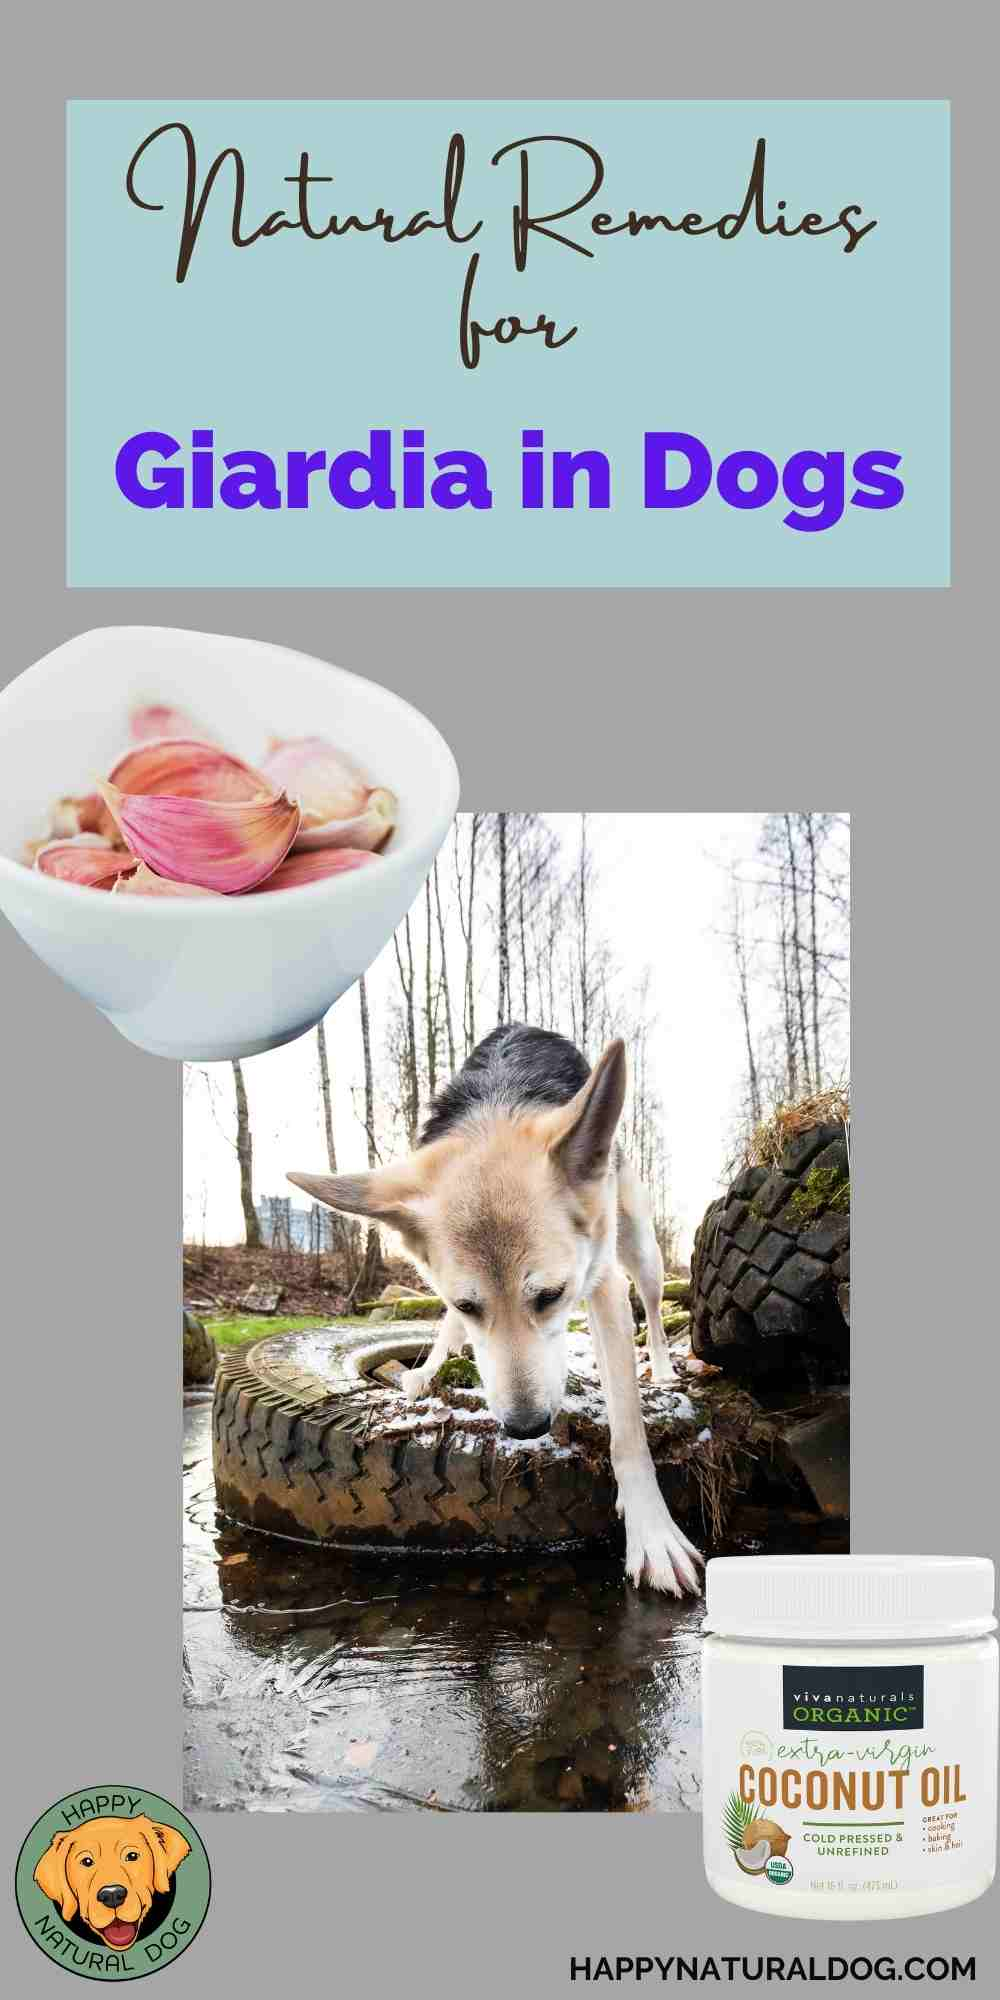 Natural Remedies for Giardia in Dogs